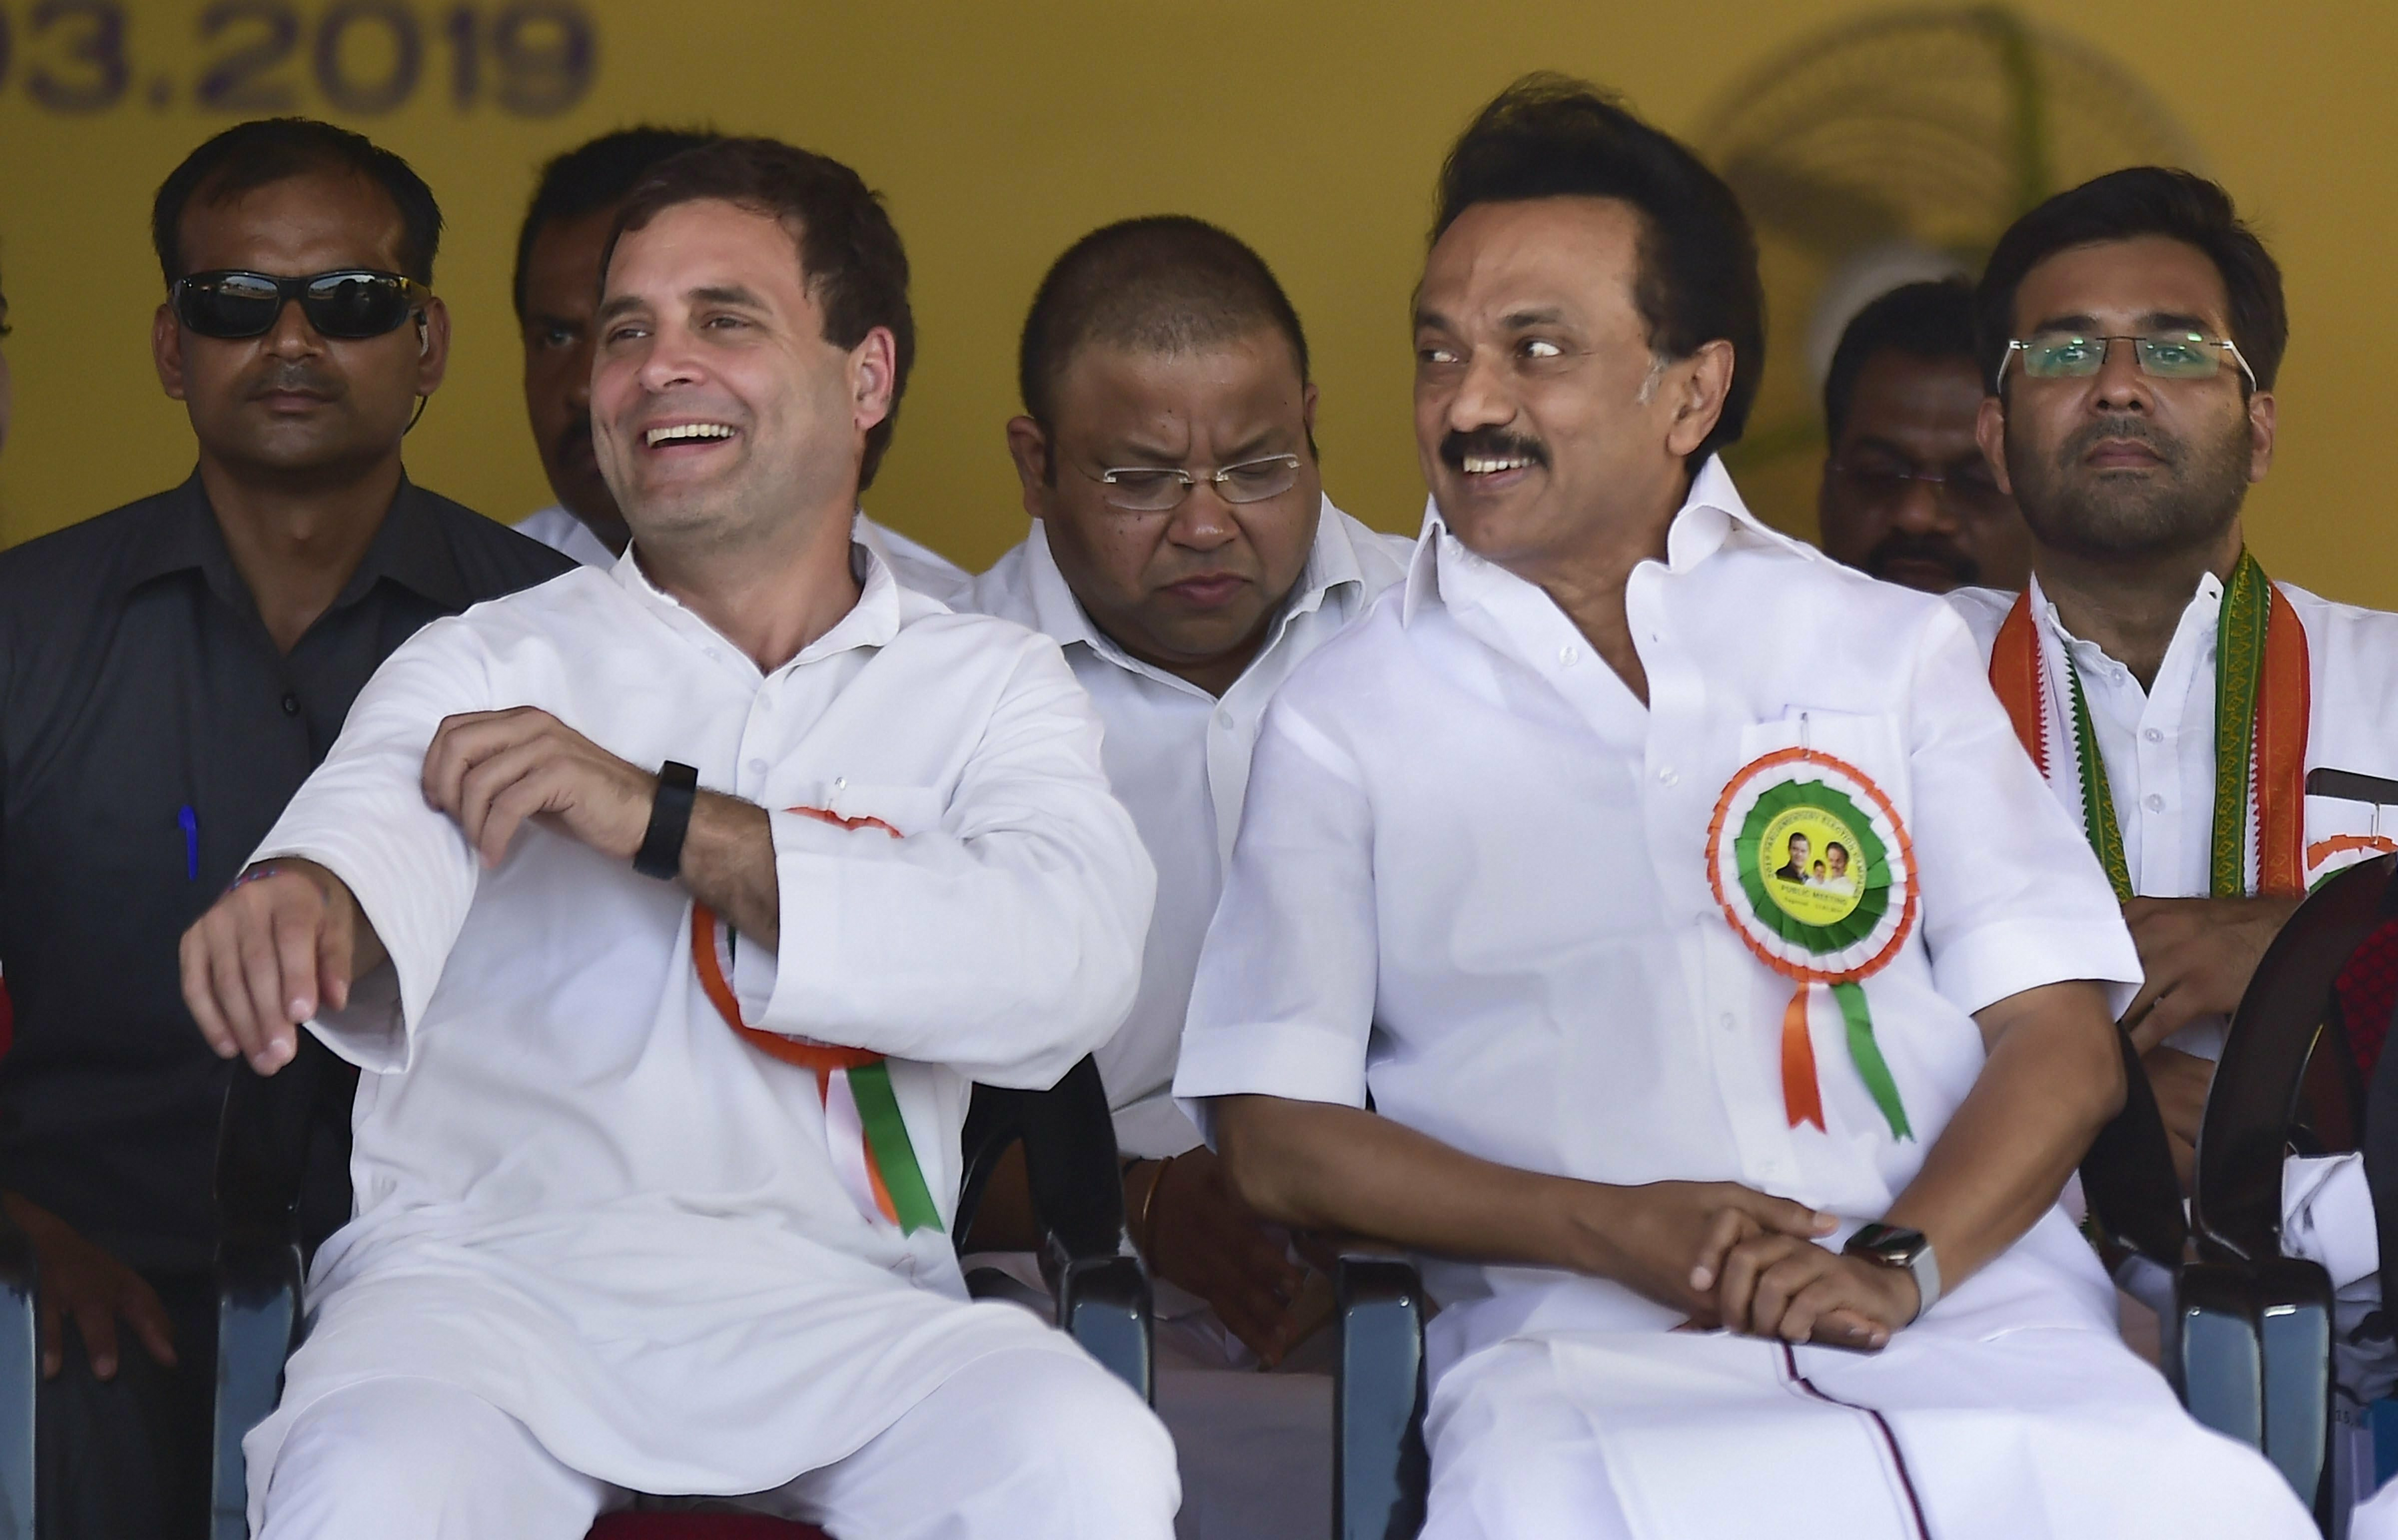 Congress President Rahul Gandhi and Dravida Munnetra Kazhagam (DMK) President M K Stalin during the formal launch of United Progressive Alliance (UPA), a campaign in Tamil Nadu from the Kanyakumari parliamentary constituency, at Nagercoil, in Kanyakumari district - PTI